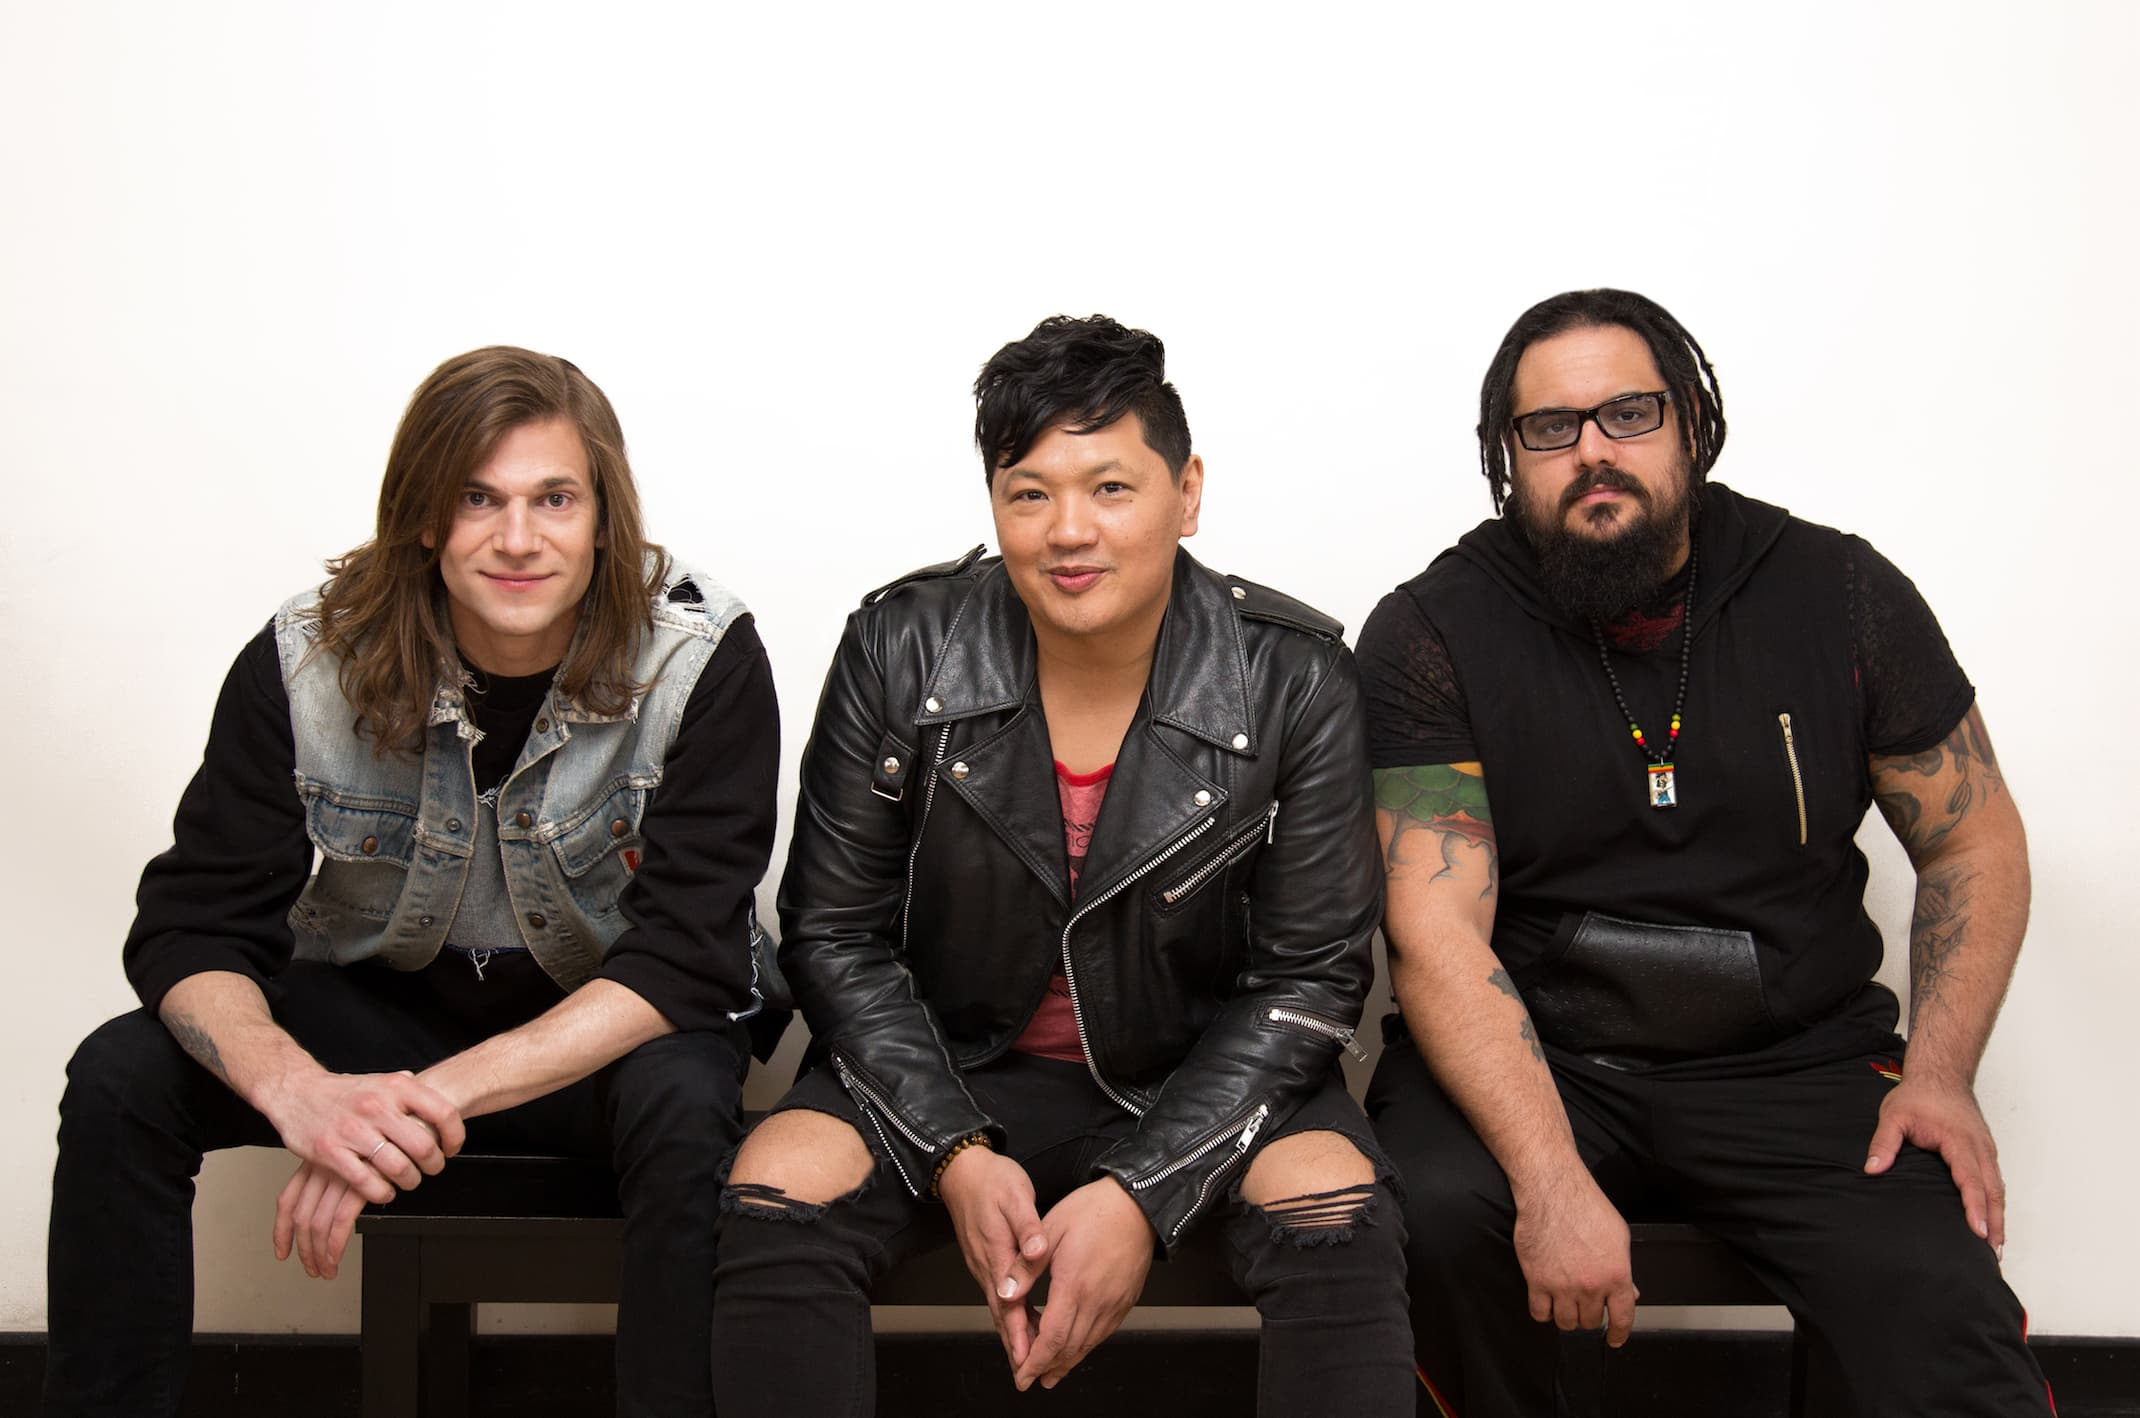 Artist Discovery Series Featuring The Steadies